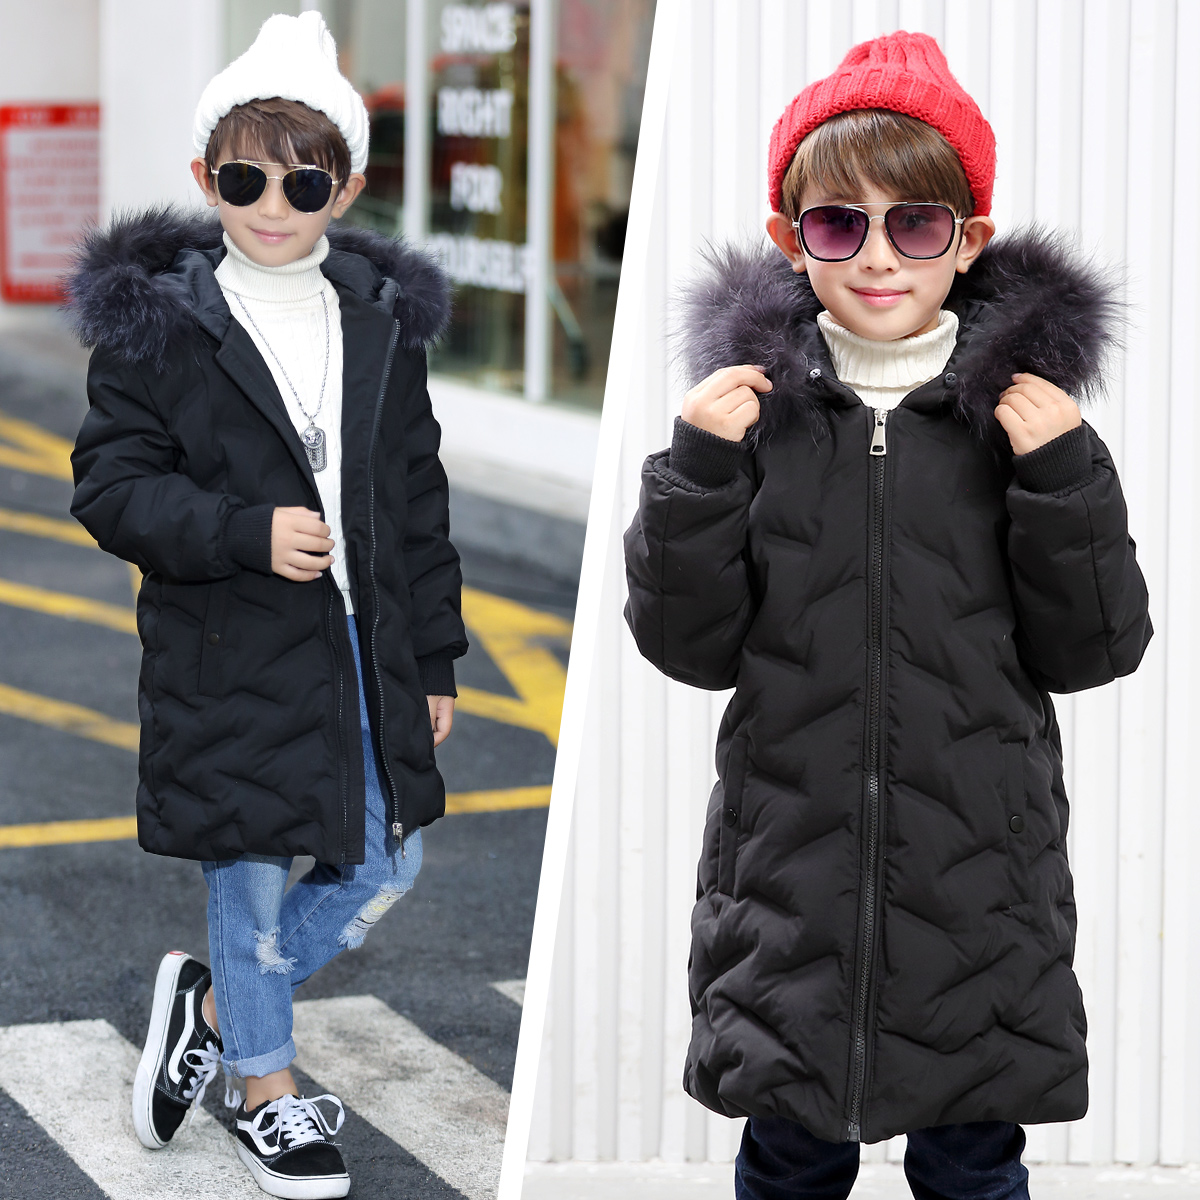 2017 New Fashion Children Down Coat Winter Warm Thick Solid Color Down Jacket For Boys White Duck Down Kids Clothes -30 Degree girls thick duck down russia winter jacket children coats warm 100% thick duck down new children s winter feather jacket 30